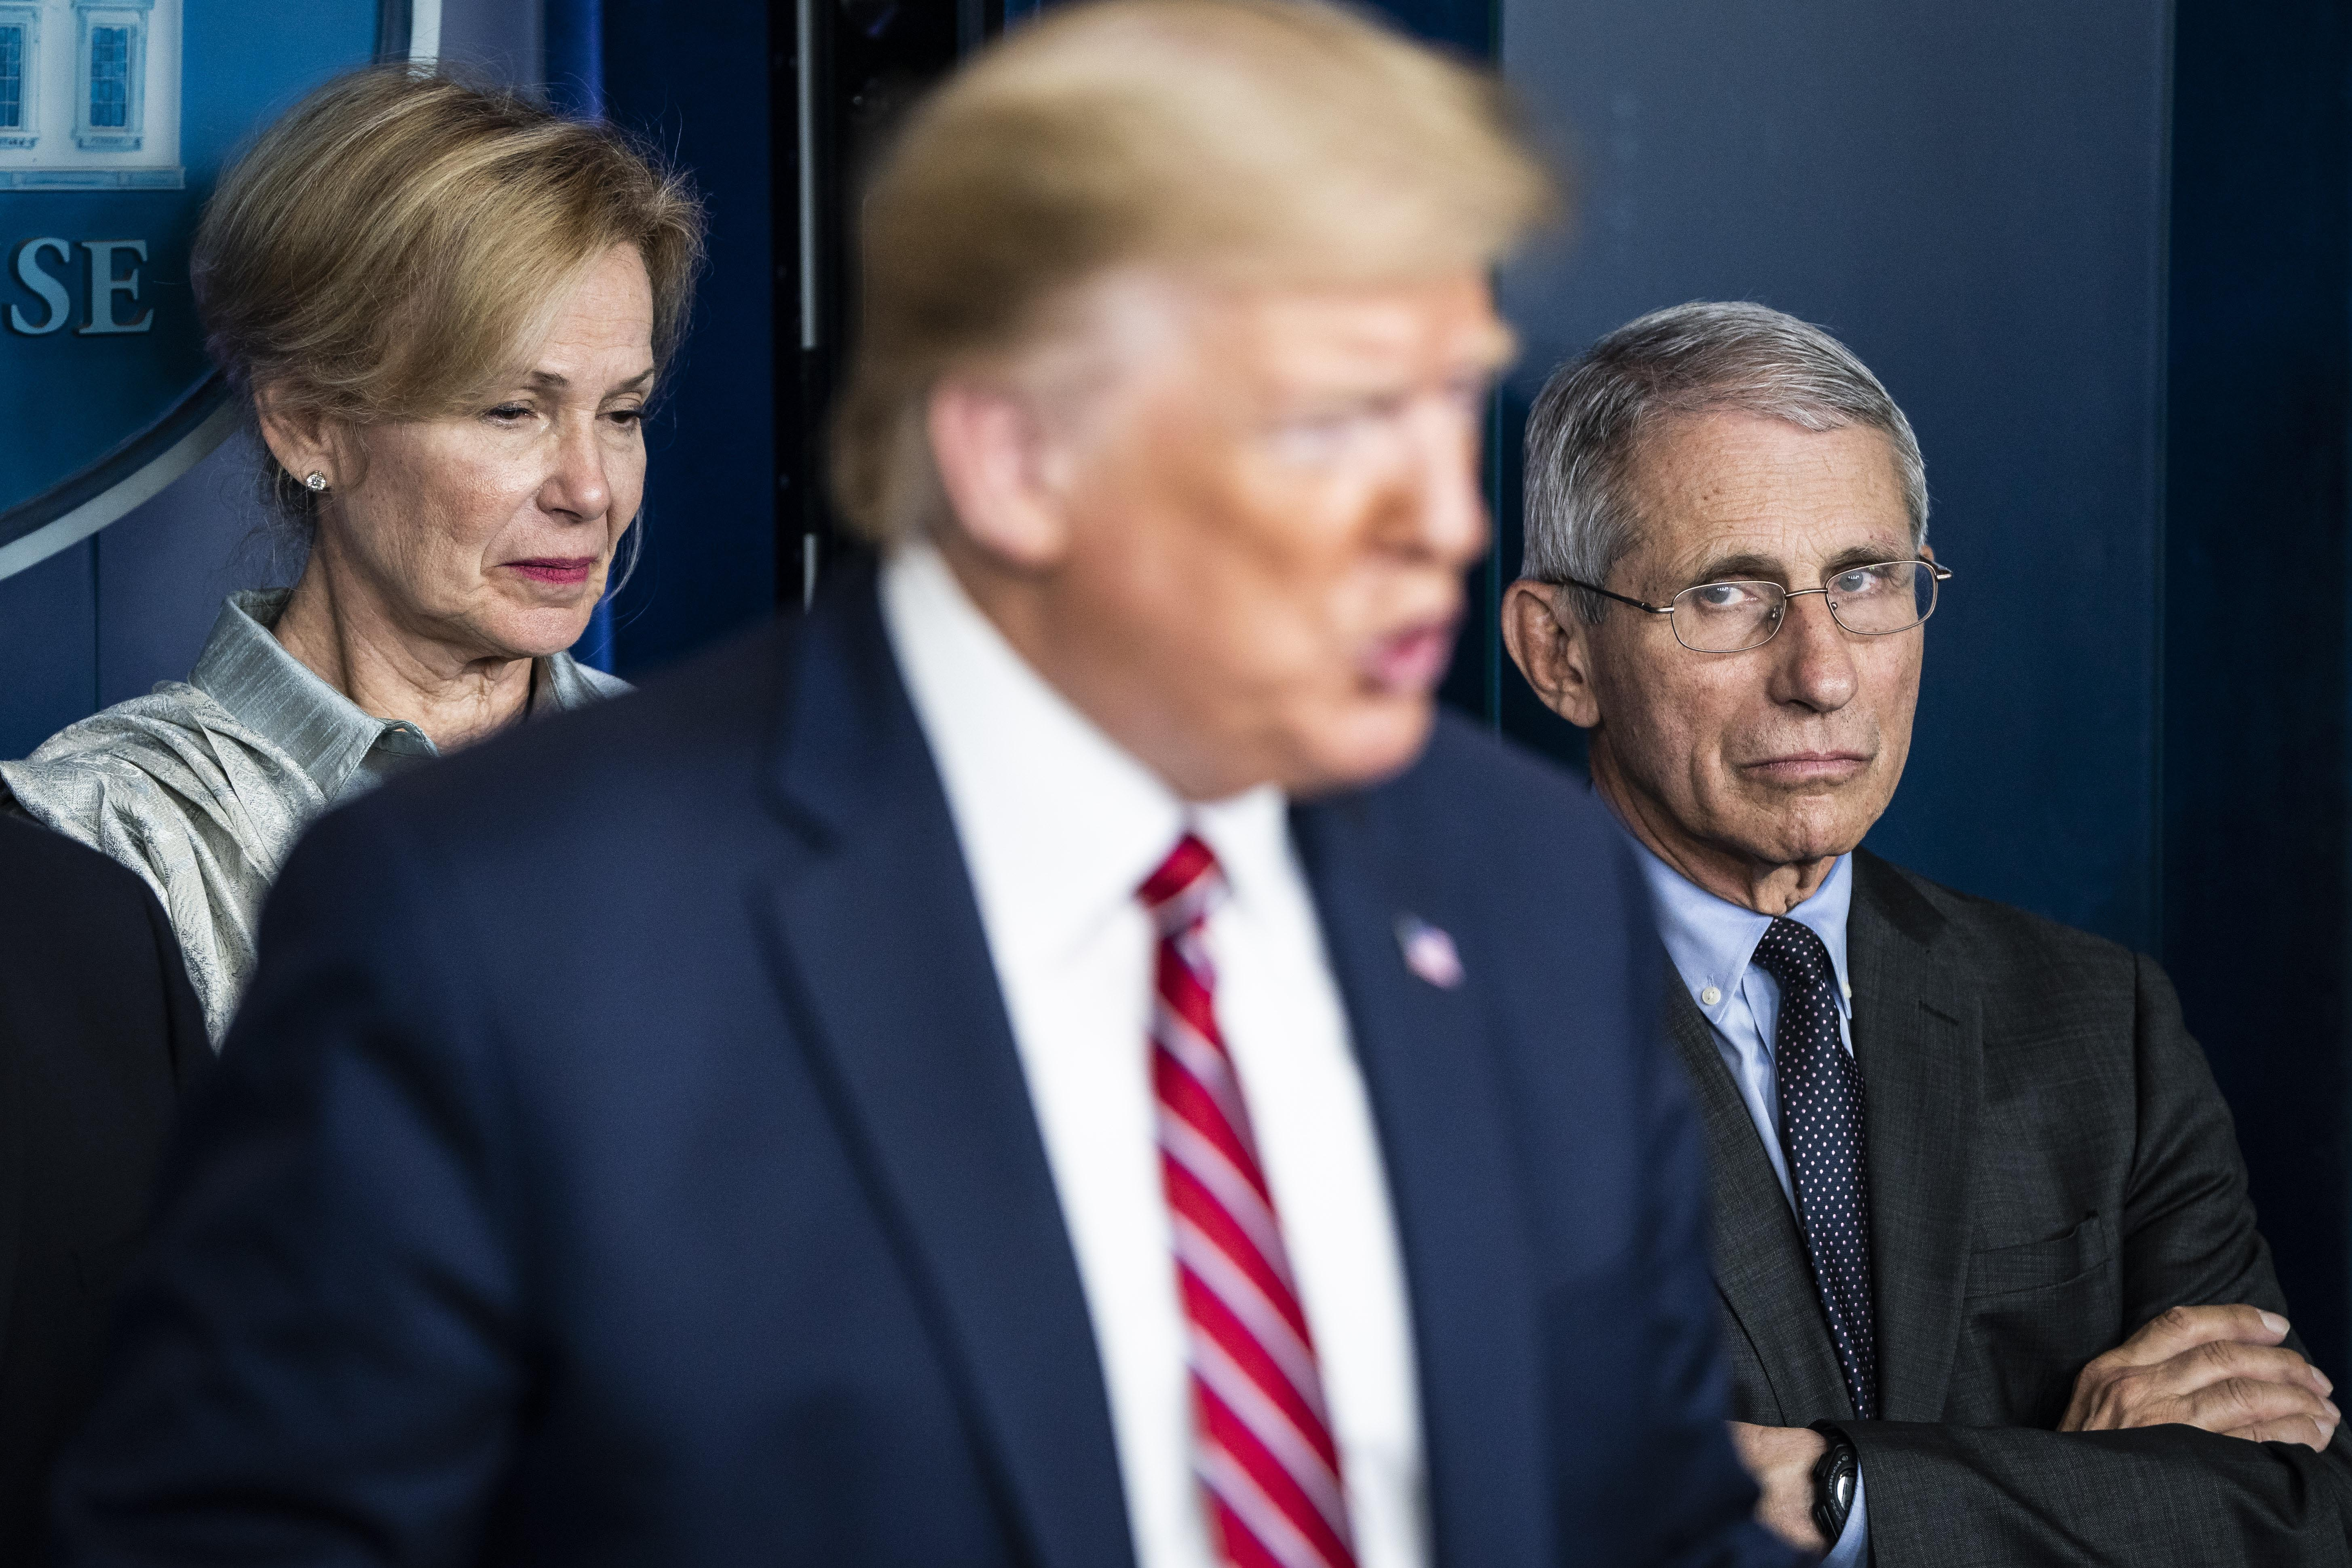 From left in background, Dr. Deborah Birx and Dr. Anthony Fauci listen as President Donald Trump speaks at a coronavirus briefing in Washington, DC, on March 20.